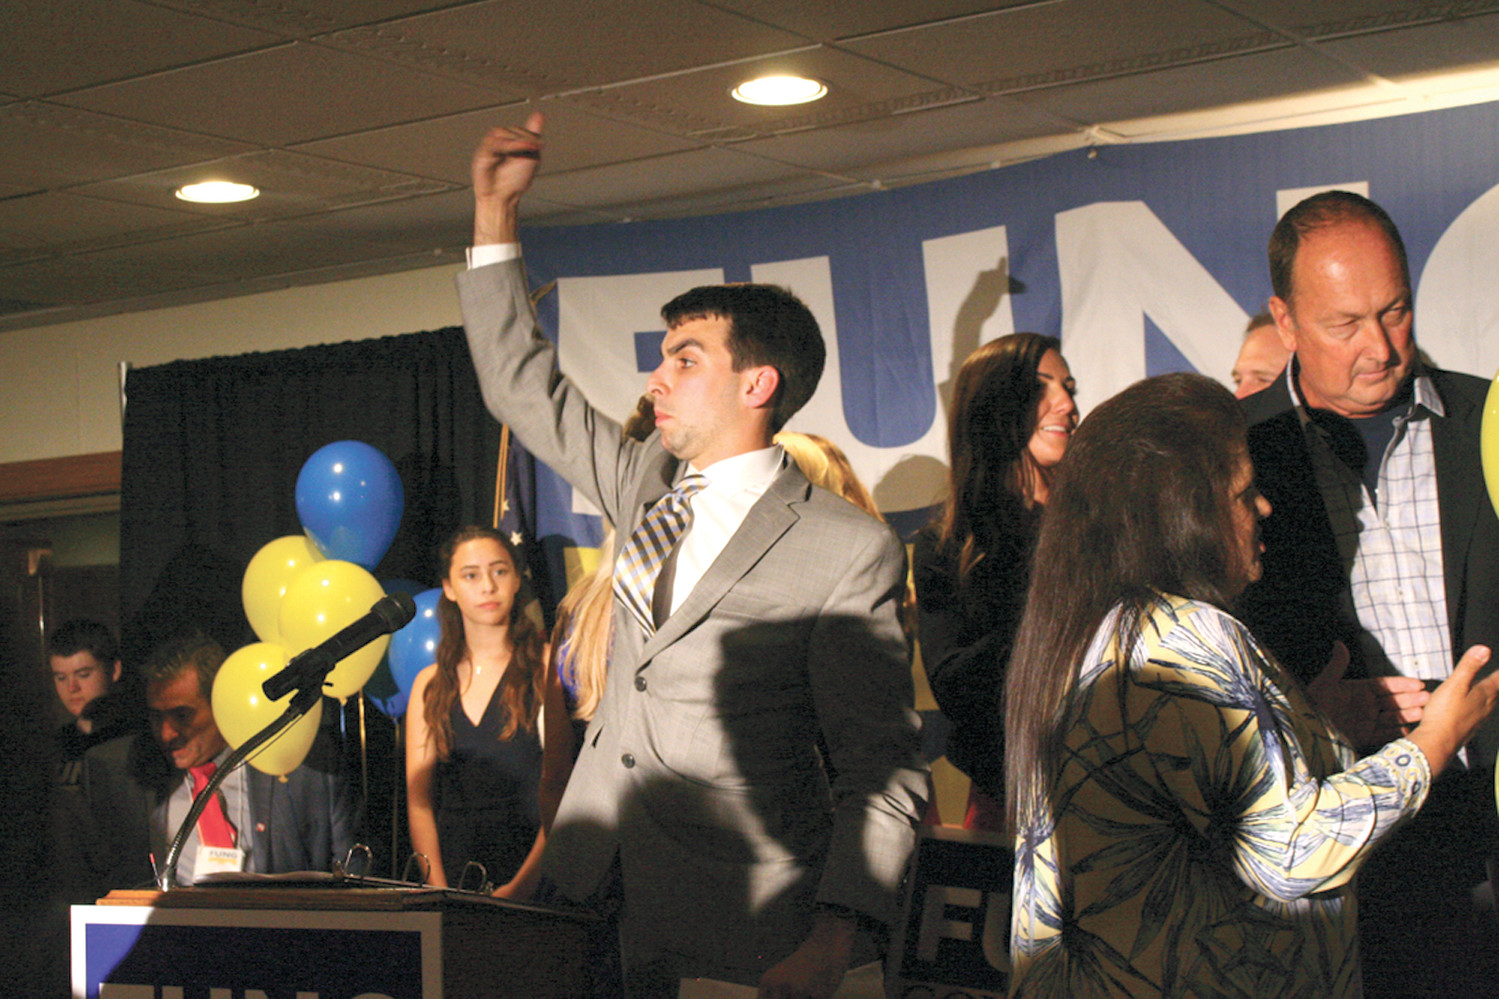 BUSY MAN: Fung's press secretary, Andrew Augustus, sets up the stage before the gubernatorial candidate came out to make his primary victory speech.